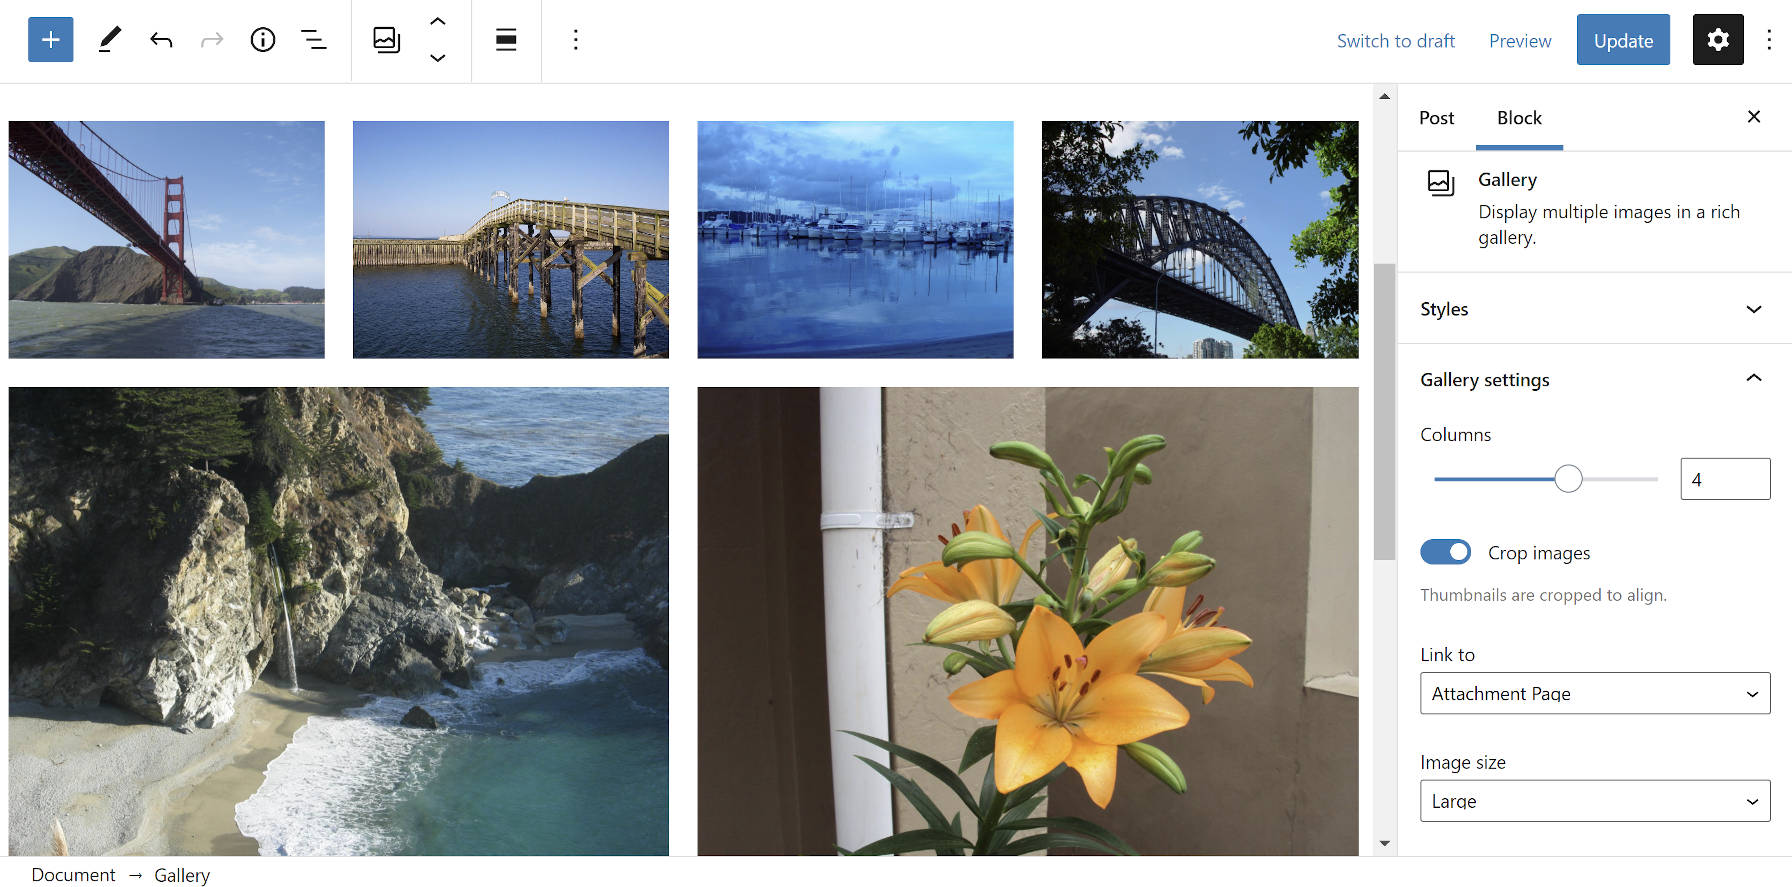 Converted classic gallery post to blocks in the WordPress editor.